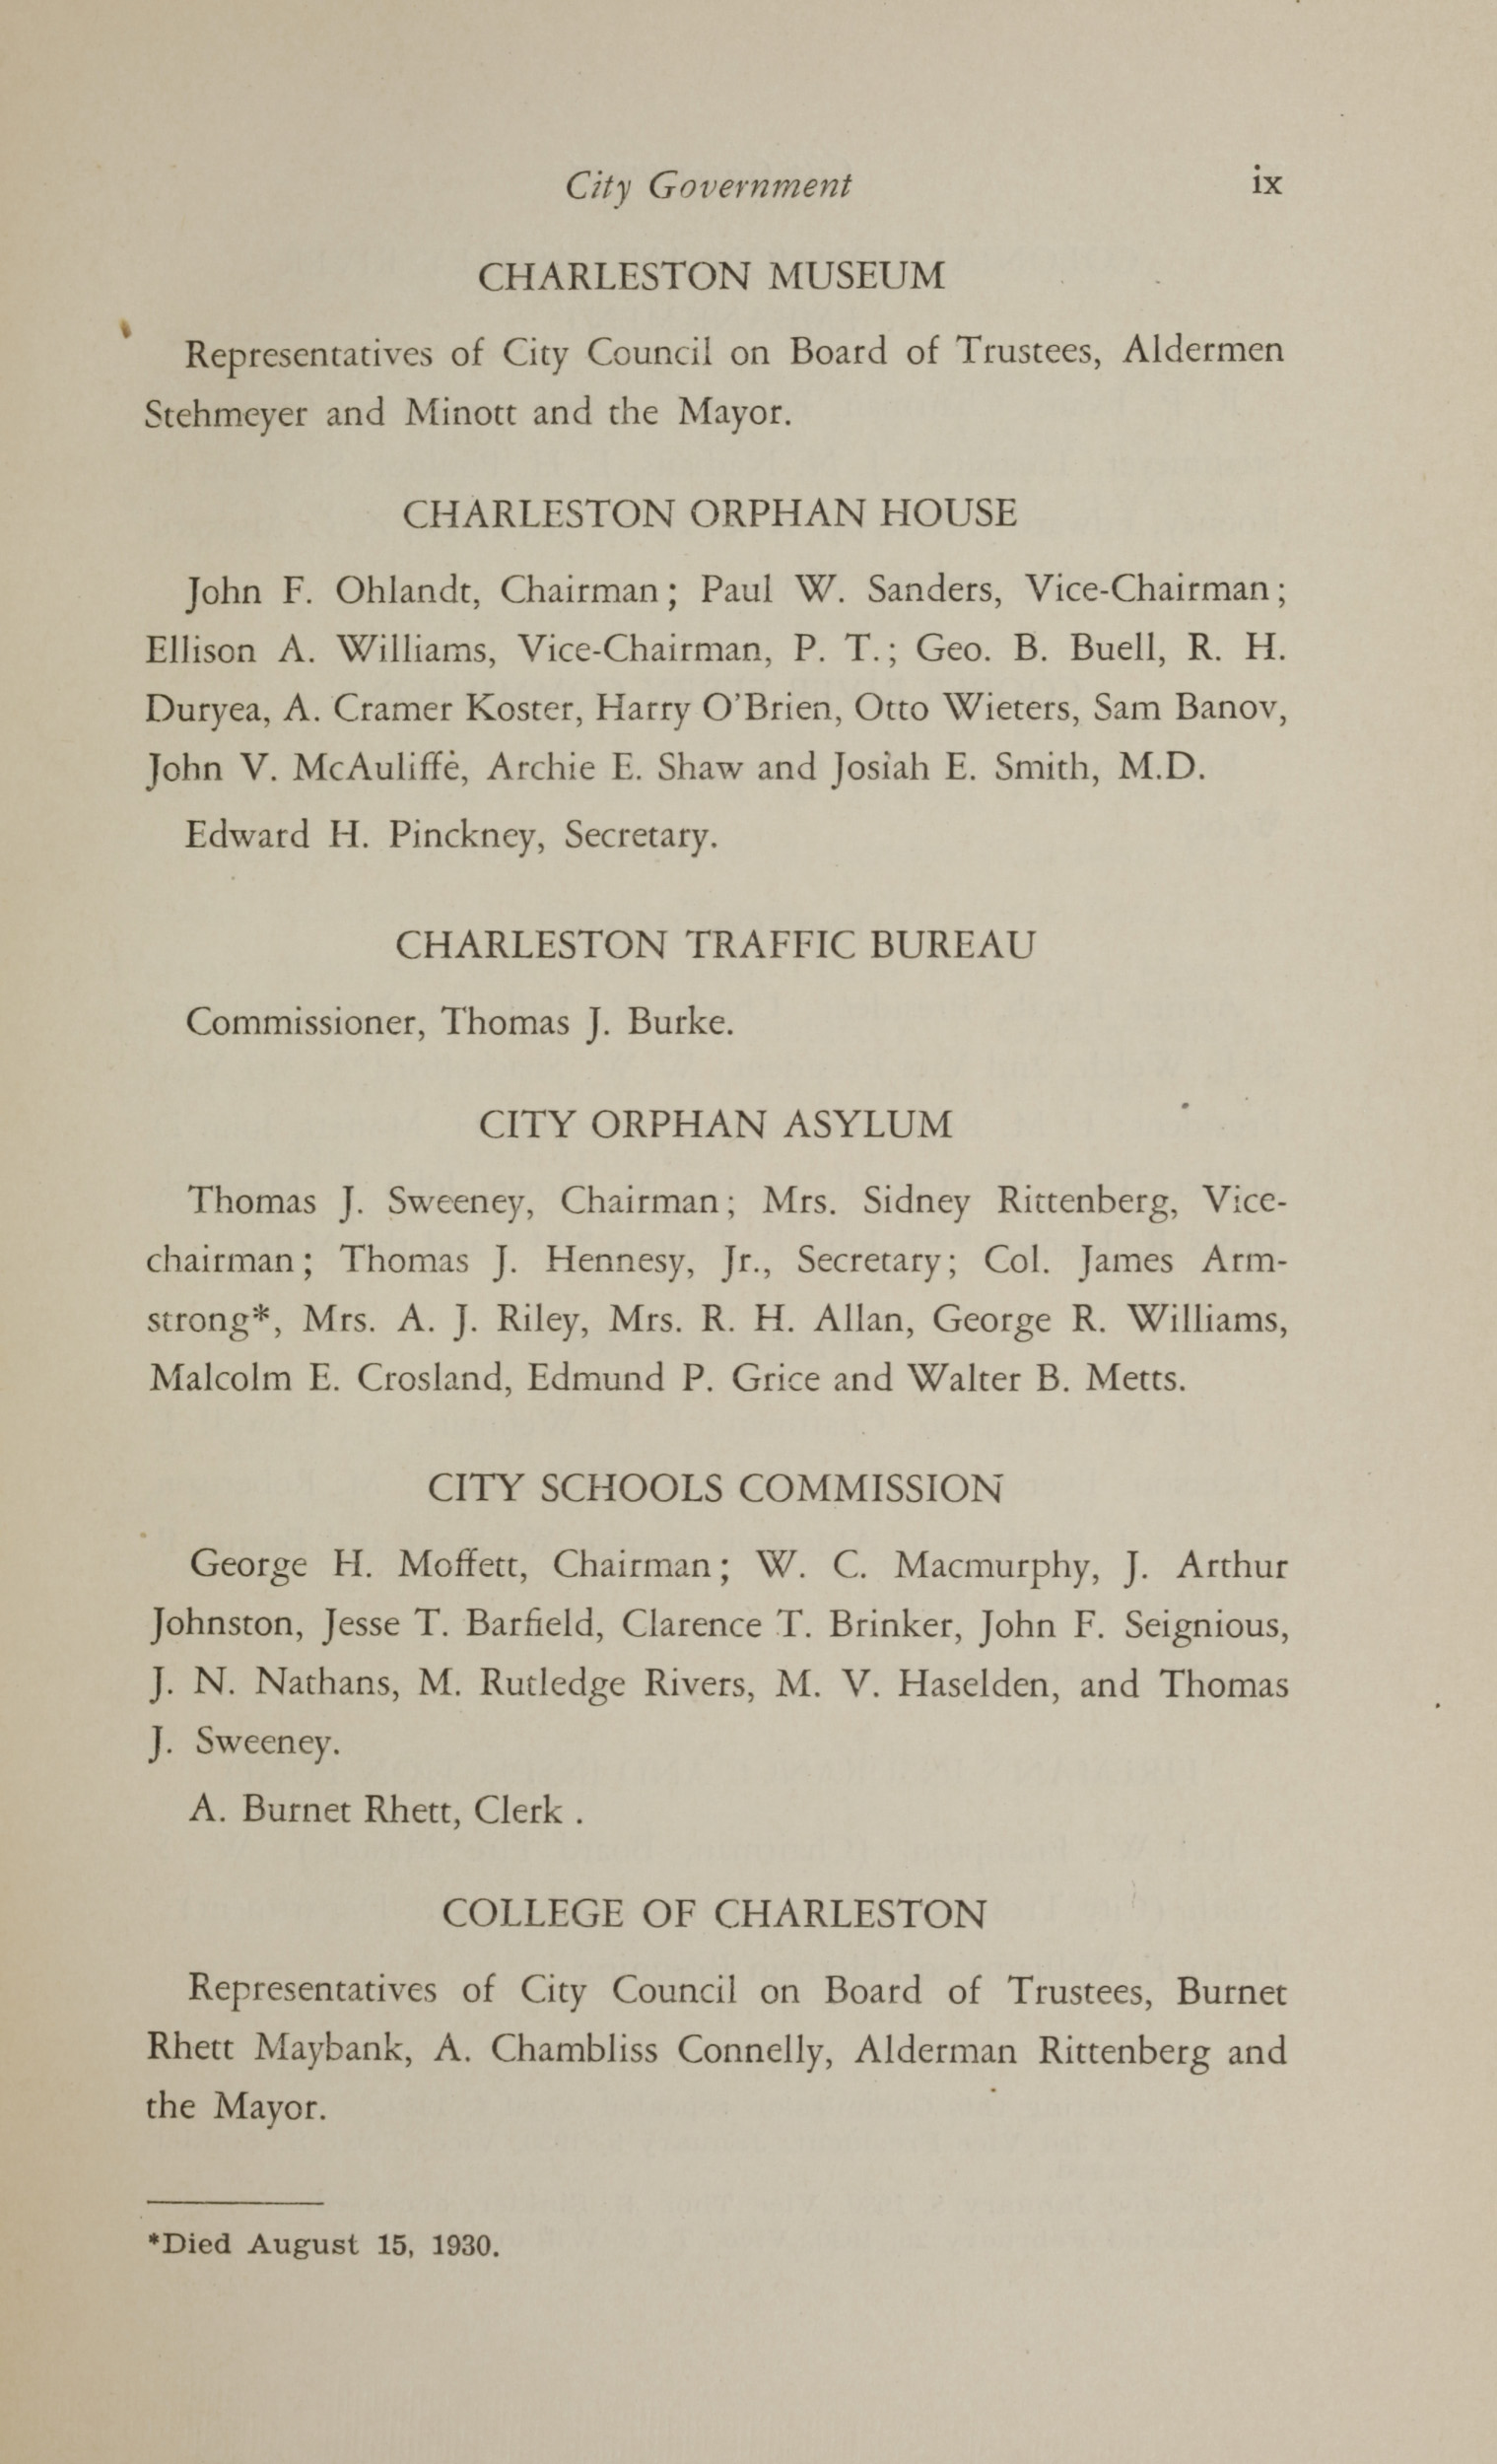 Charleston Yearbook, 1930, page ix